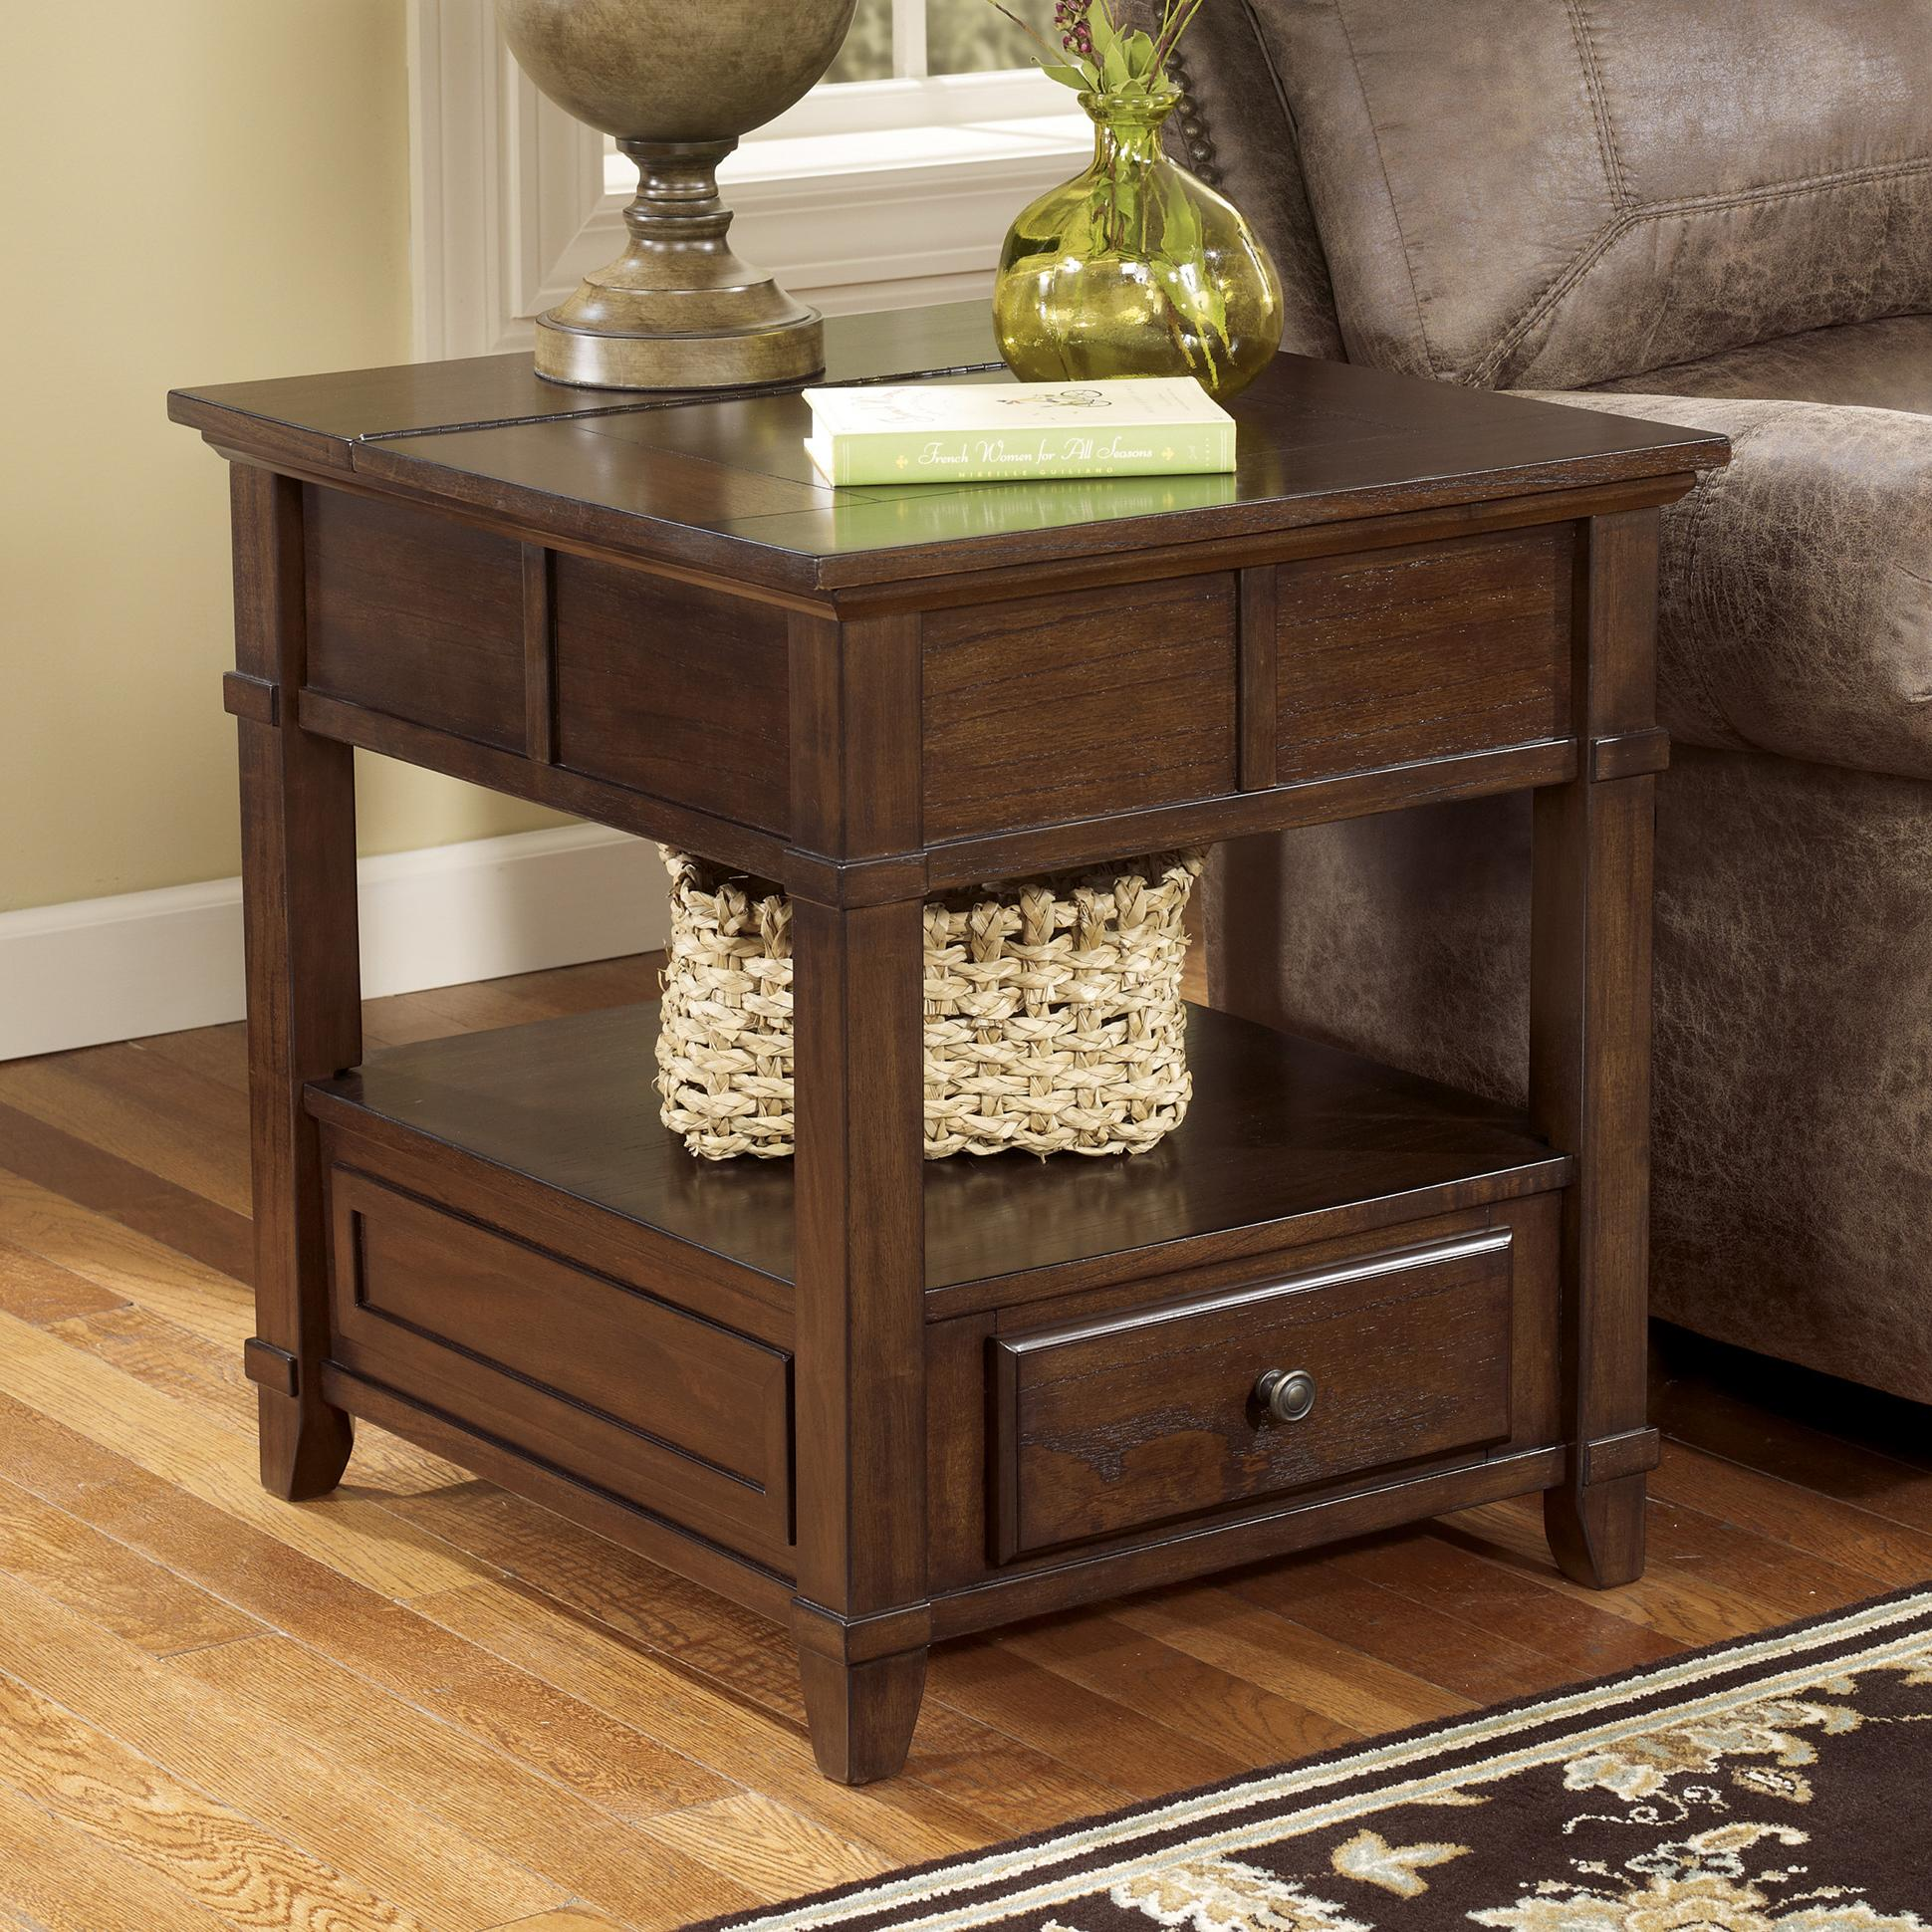 Coffee And End Tables With Storage Gately End Table With Hidden Storage Electrical Outlet By Signature Design By Ashley At Northeast Factory Direct